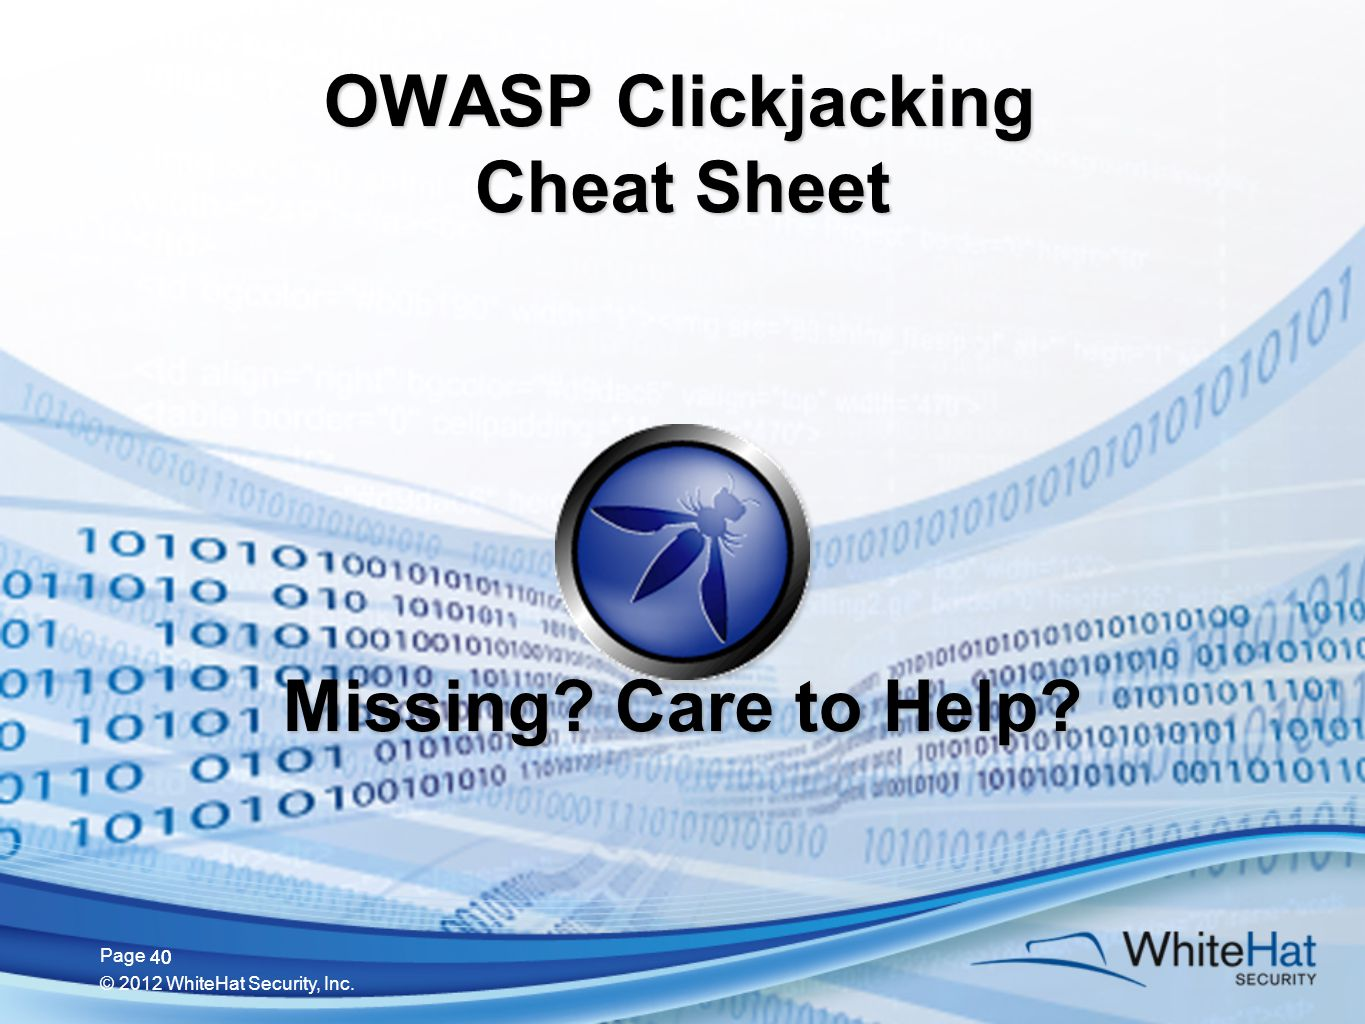 40 Page © 2012 WhiteHat Security, Inc. 40 OWASP Clickjacking Cheat Sheet Missing Care to Help